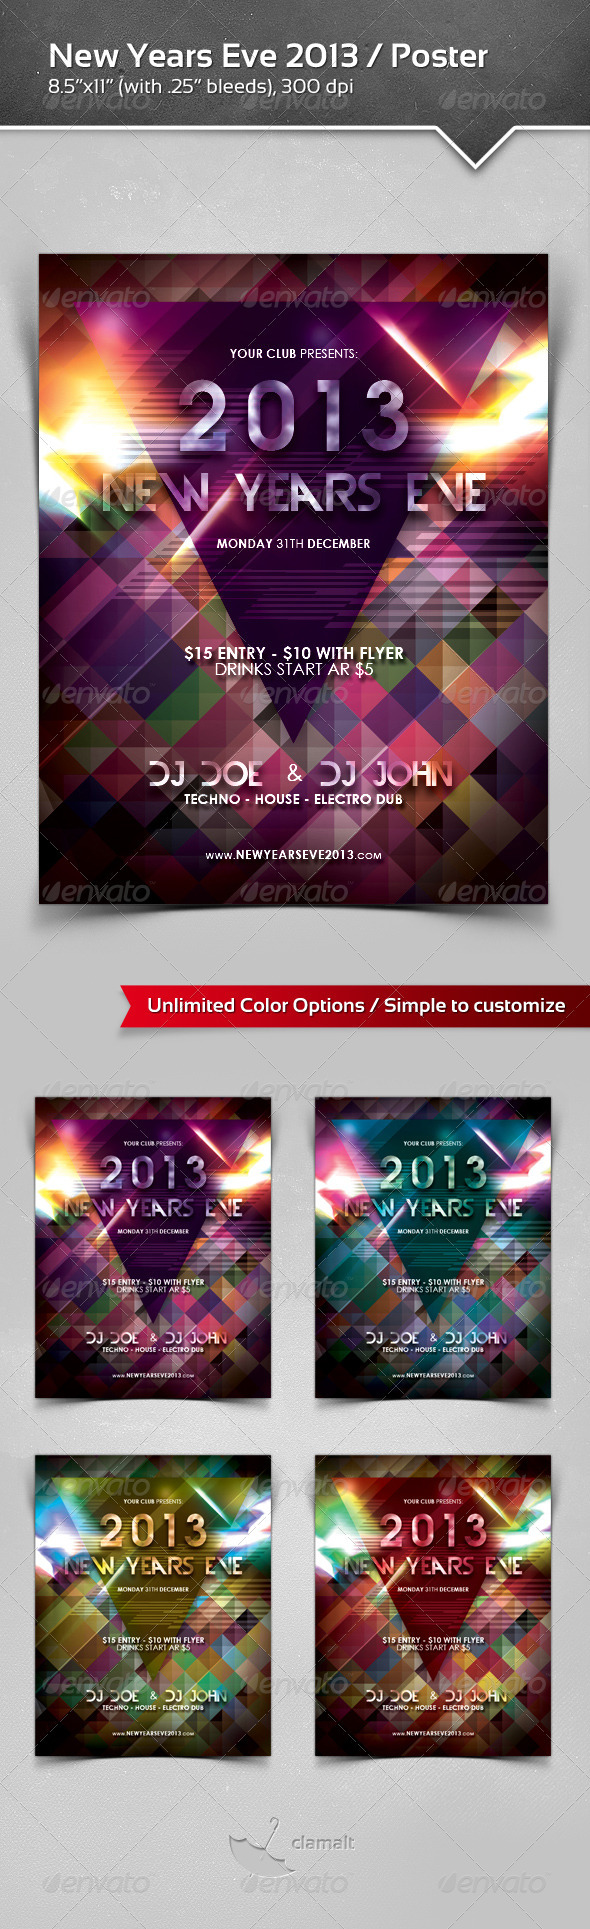 New Years Eve 2013 Poster - Flyers Print Templates